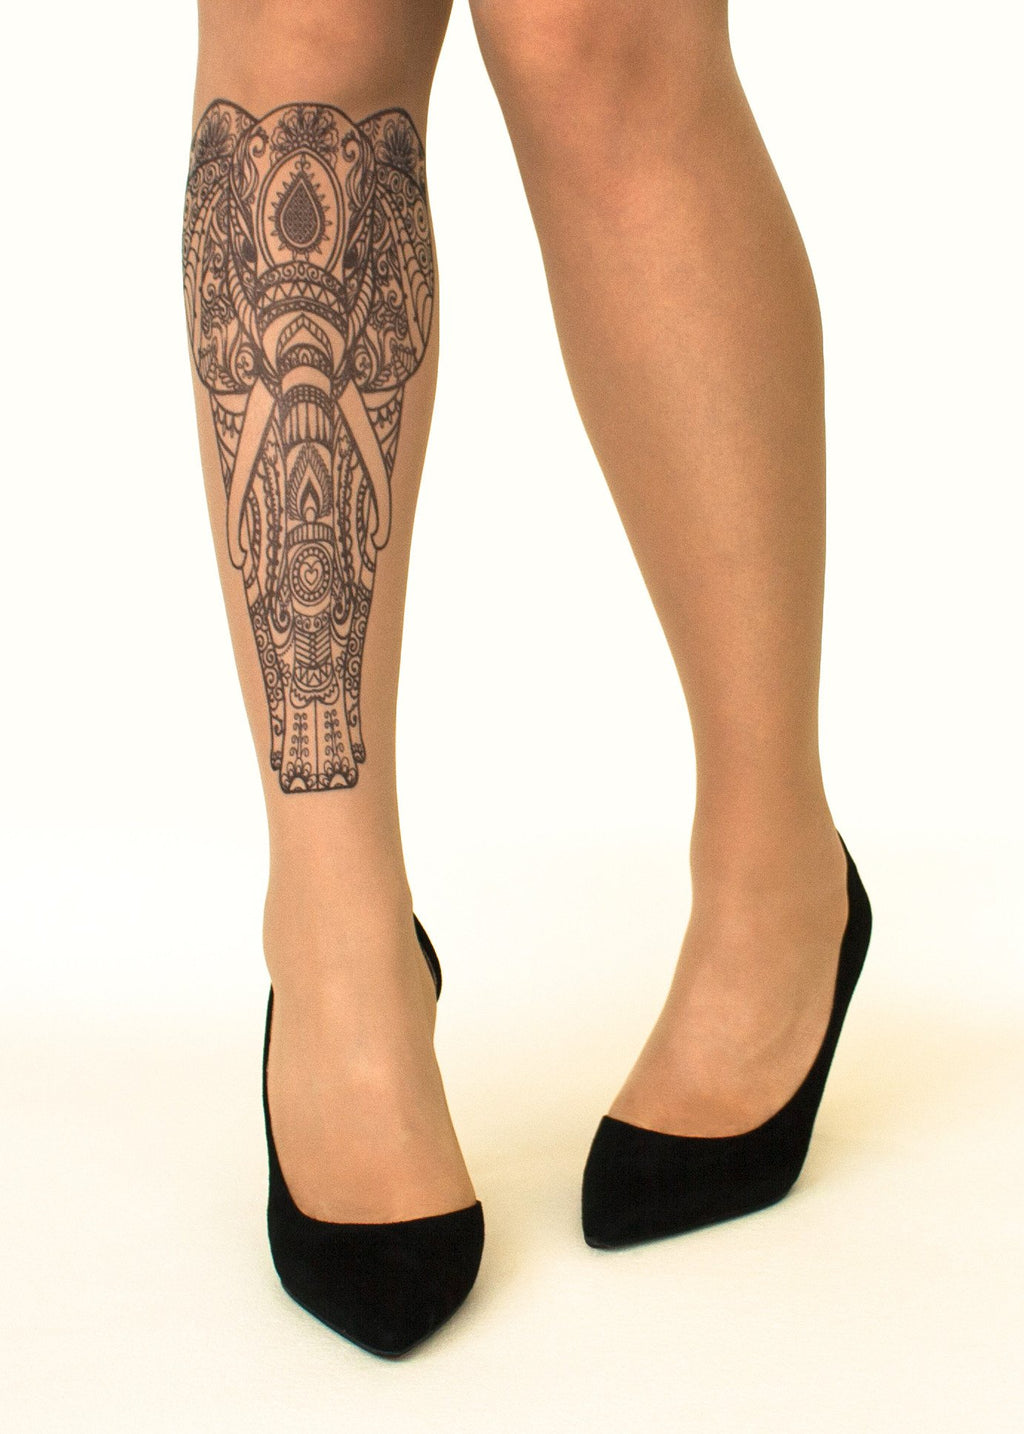 Indian Elephant Tattoo Printed Sheer Tights/Pantyhose